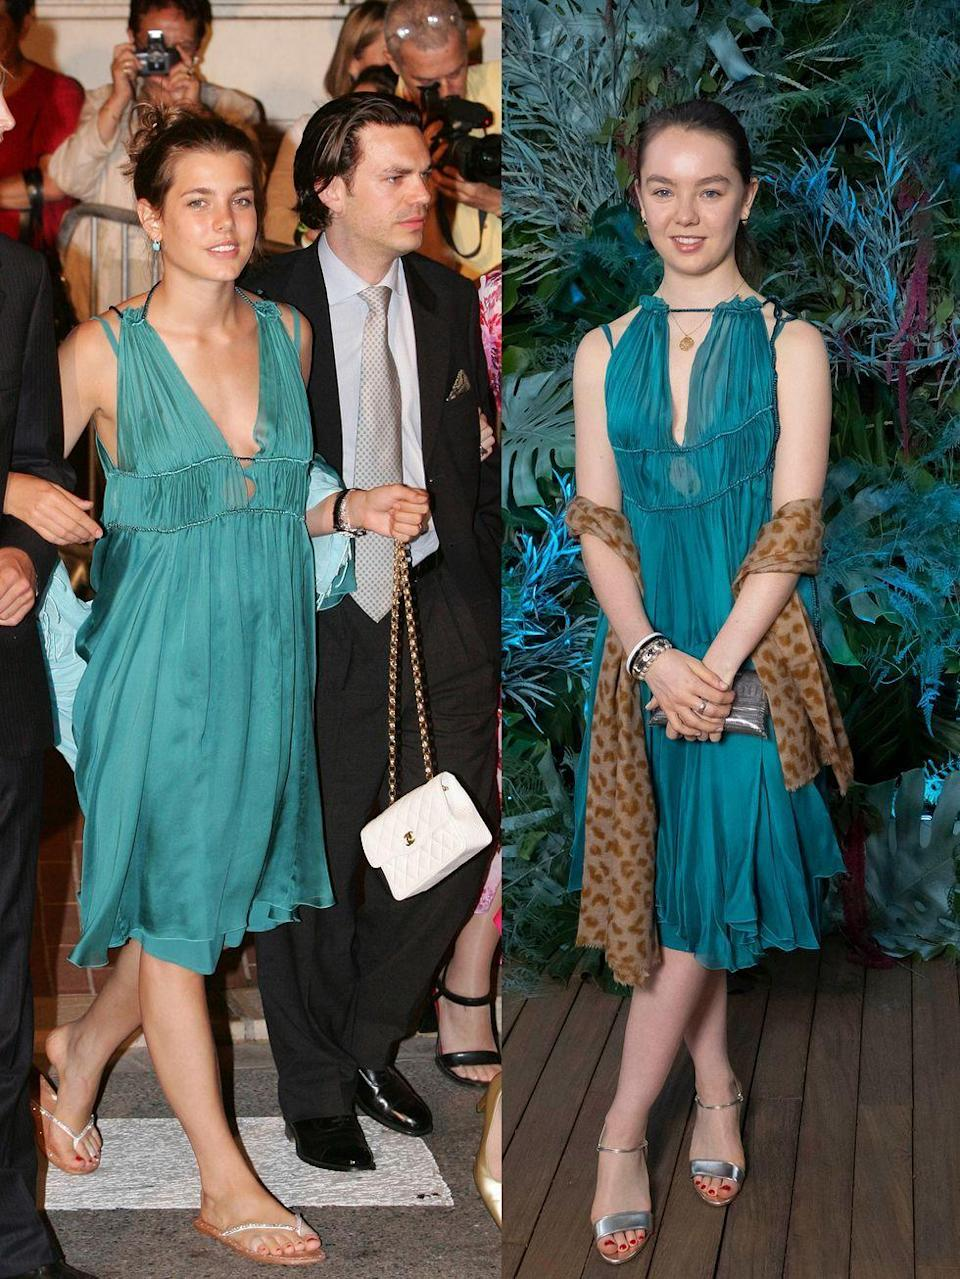 <p>Even royals get their sister's hand-me-downs. On May 2, 2019, Alexandra, right, wore the blue-green dress that her older sister wore fourteen years prior. Charlotte wore the dress on July 12, 2005 for her uncle, Albert II's, coronation. Alexandra then dug the dress out of the archives for an Alberta Ferretti fashion show in Monte Carlo. </p>